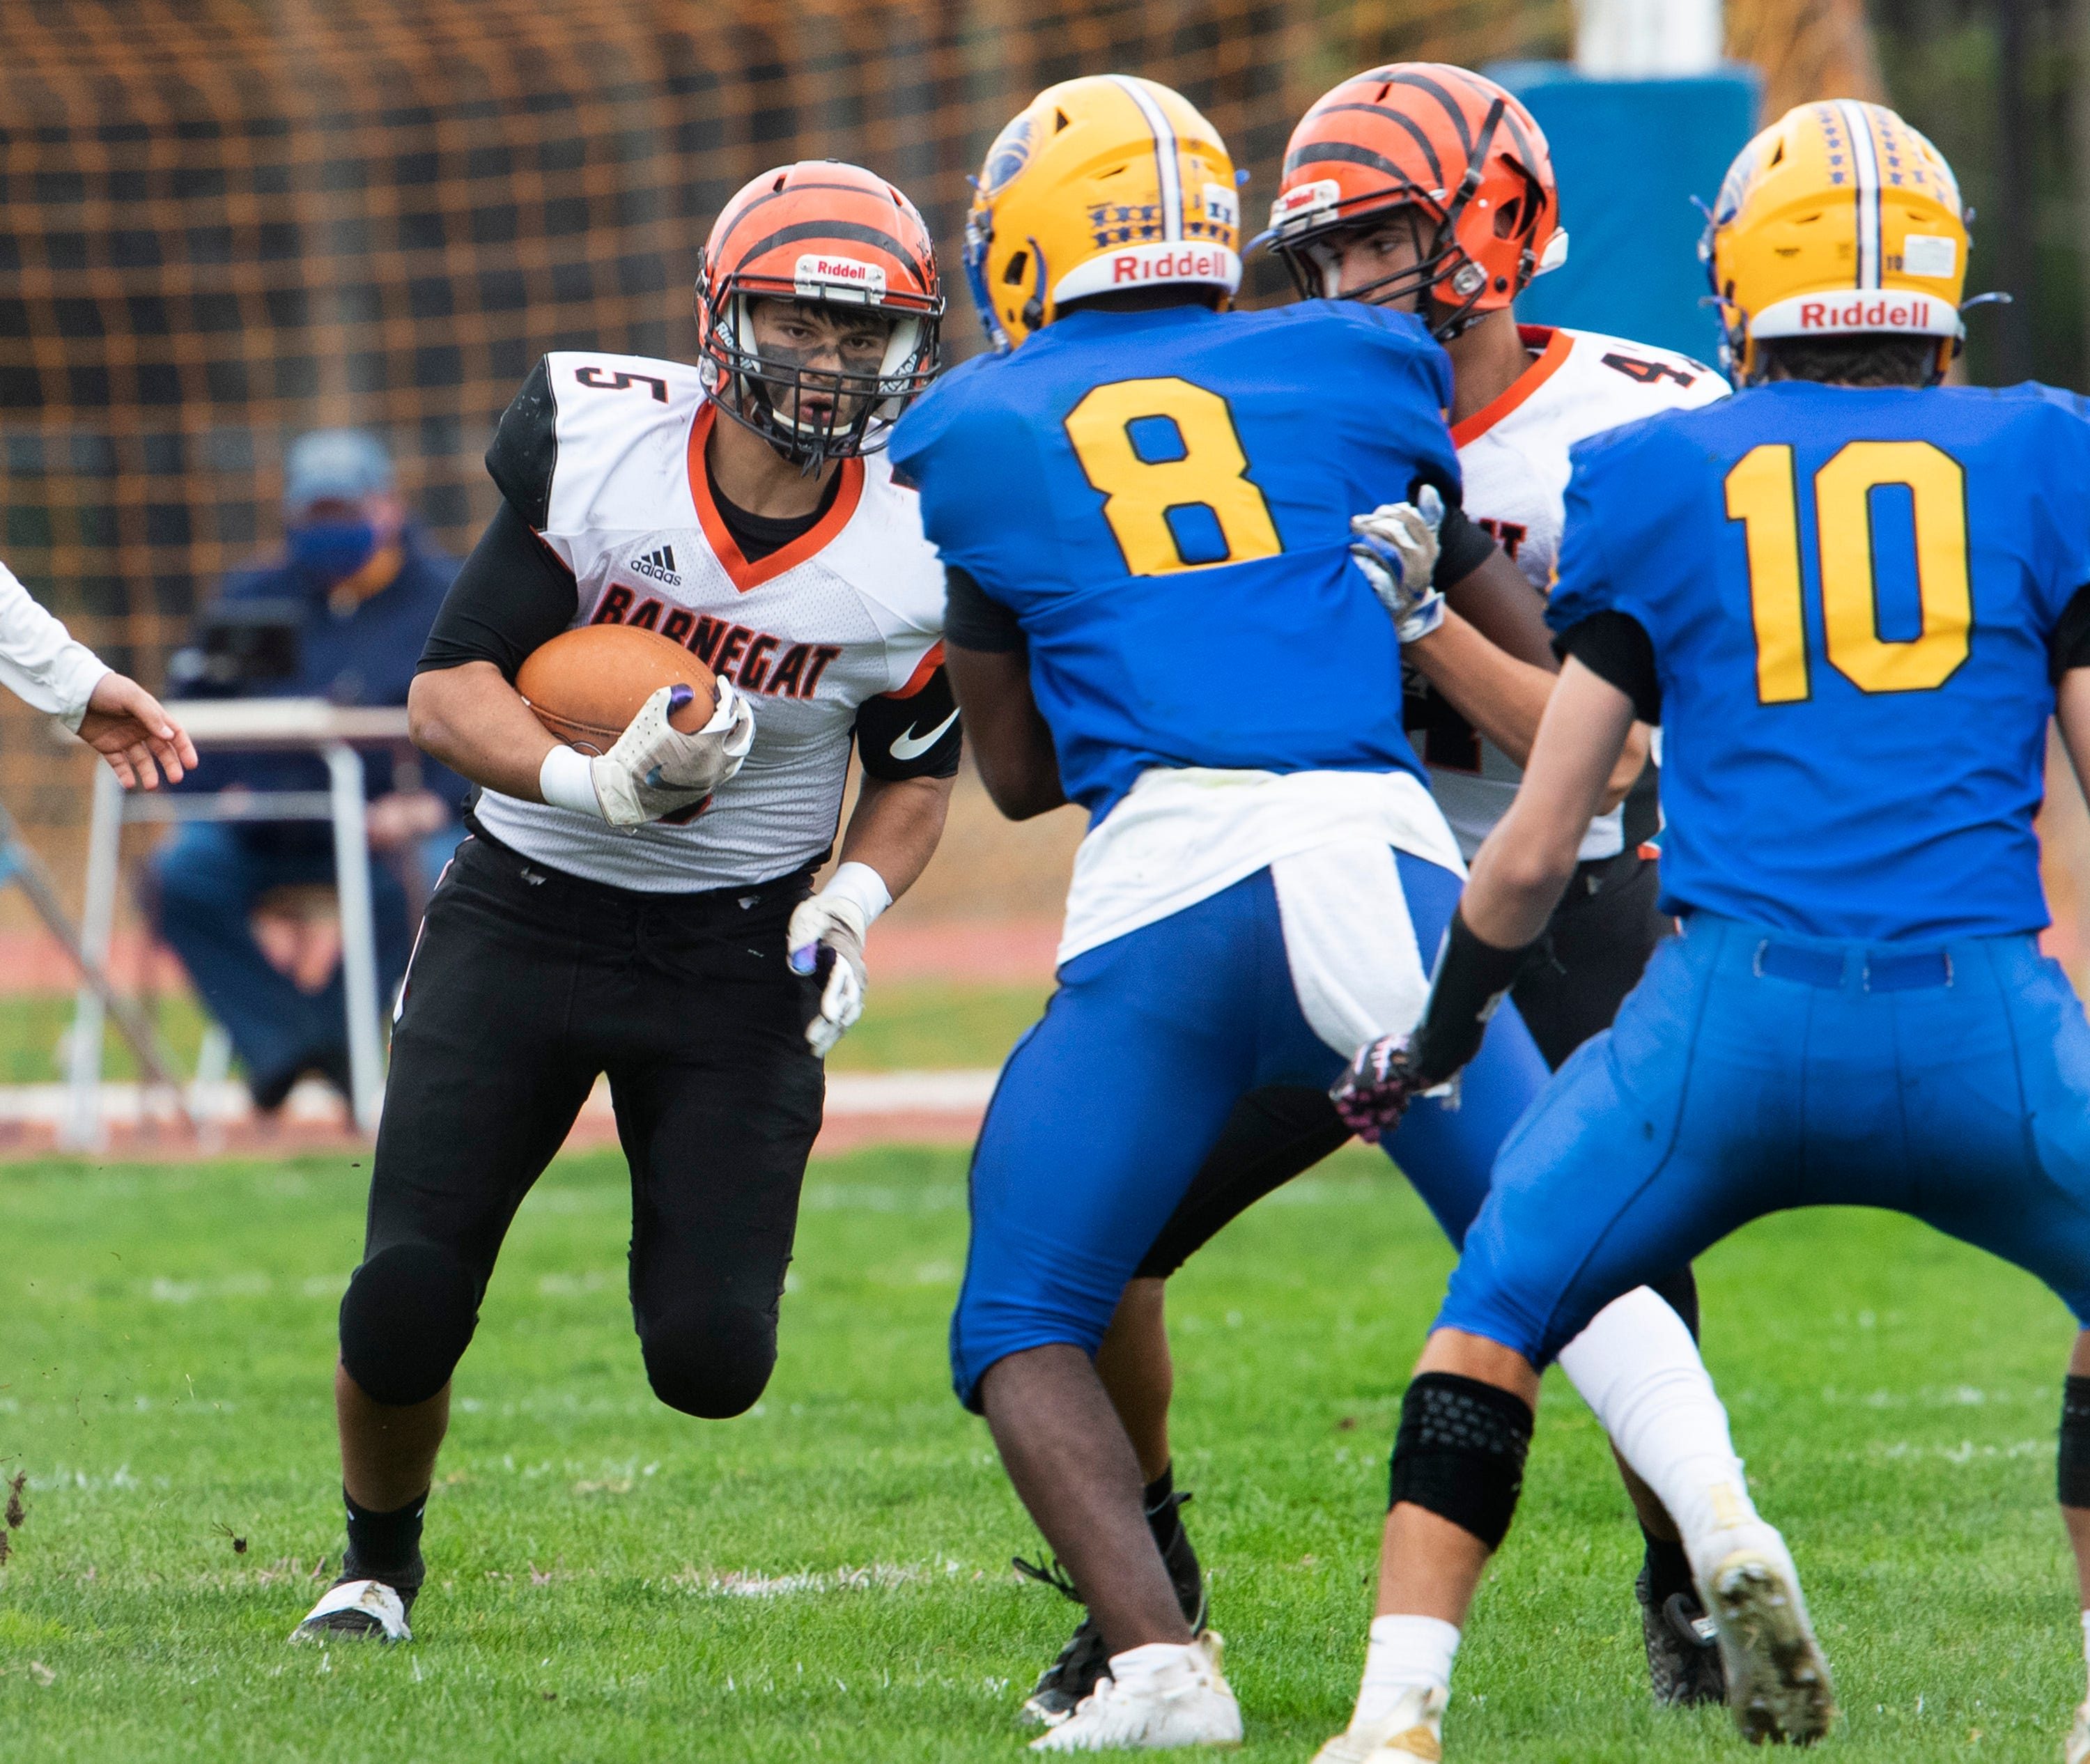 Video highlights of Manchester football versus Barnegat on Oct. 24, 2020